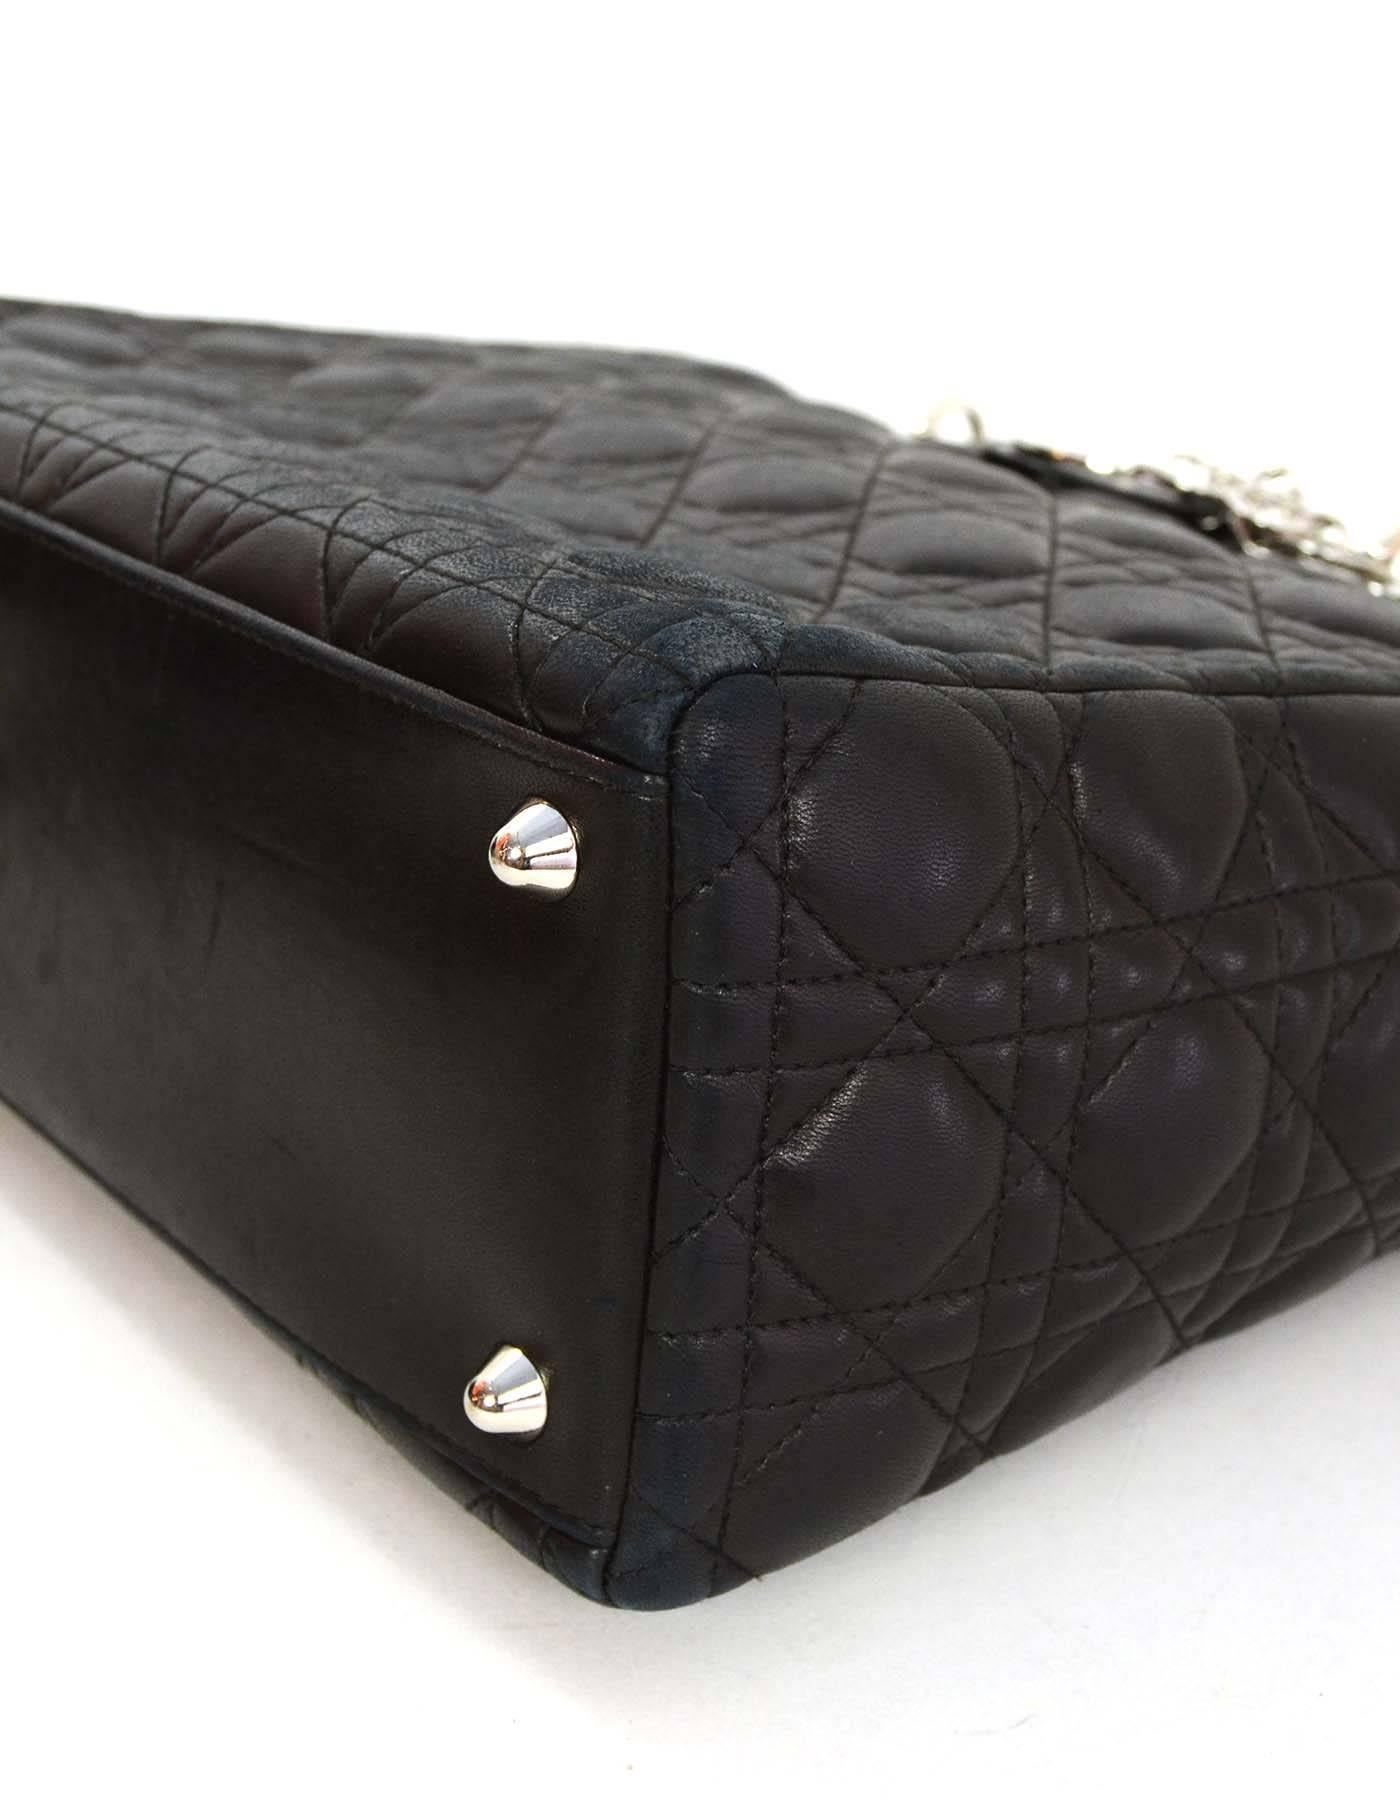 b4190160862 Christian Dior Black Quilted Leather Large Lady Dior Tote Bag SHW at 1stdibs